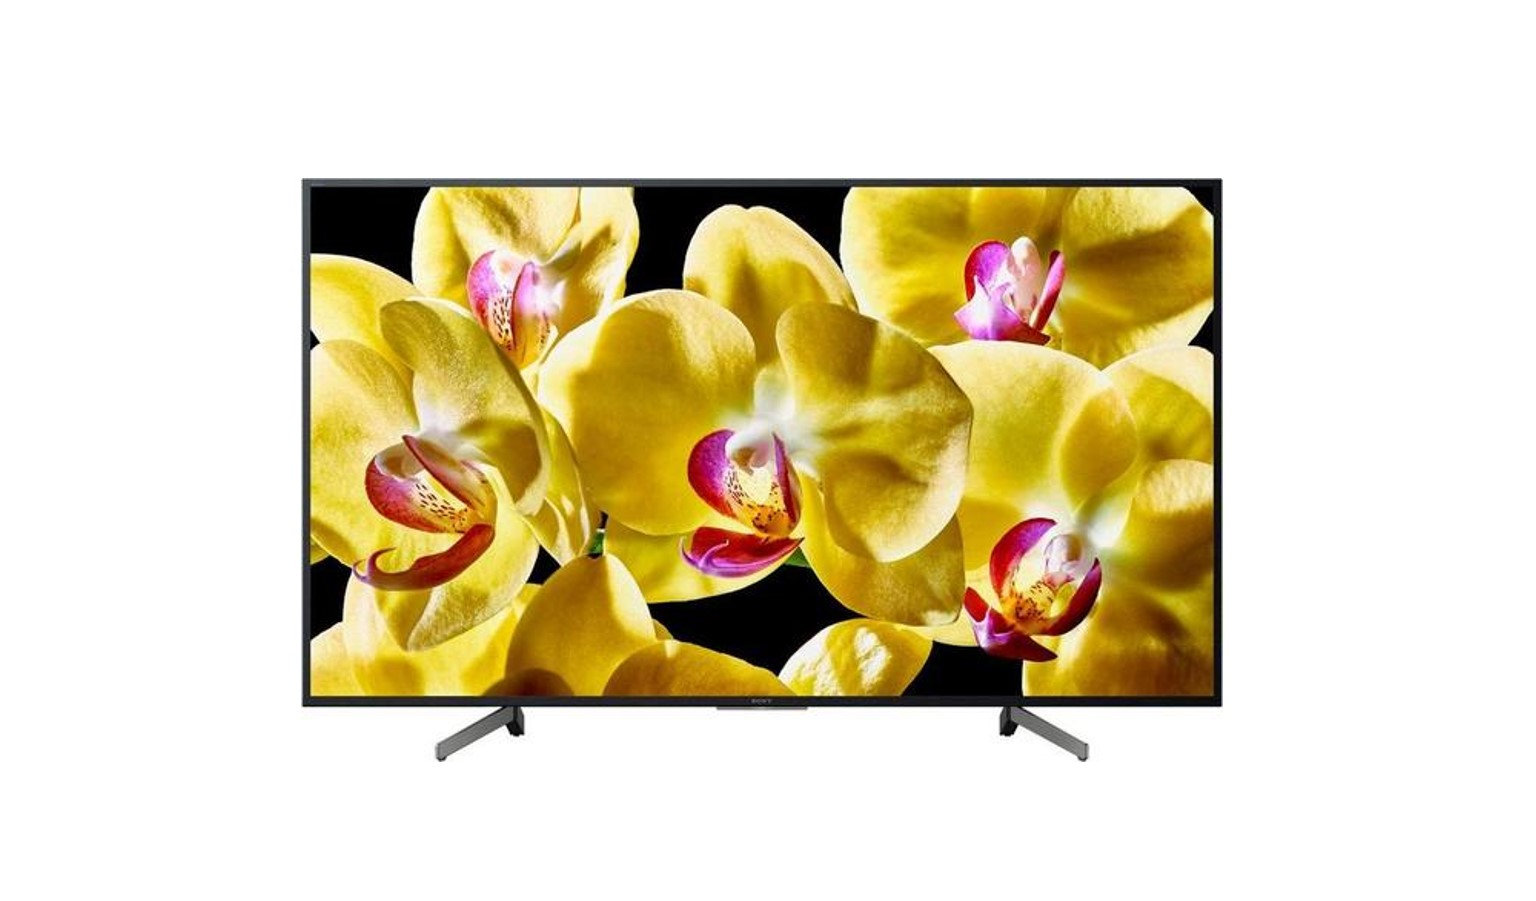 Sony KD-55X8000G 55'' 4k Ultra HD HDR Smart Android LED TV